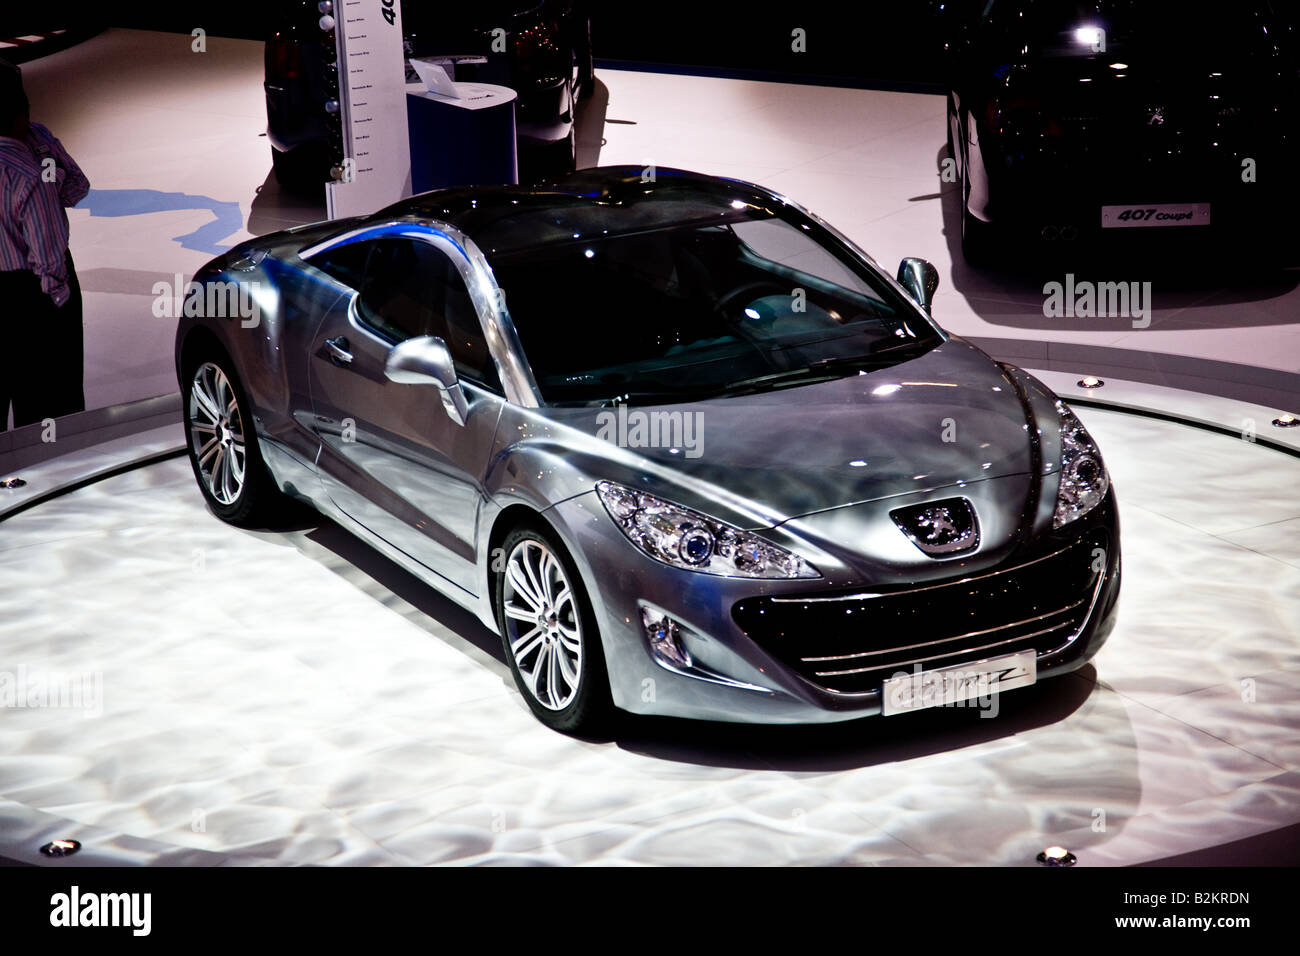 the peugeot 308 rcz concept car on display the british. Black Bedroom Furniture Sets. Home Design Ideas